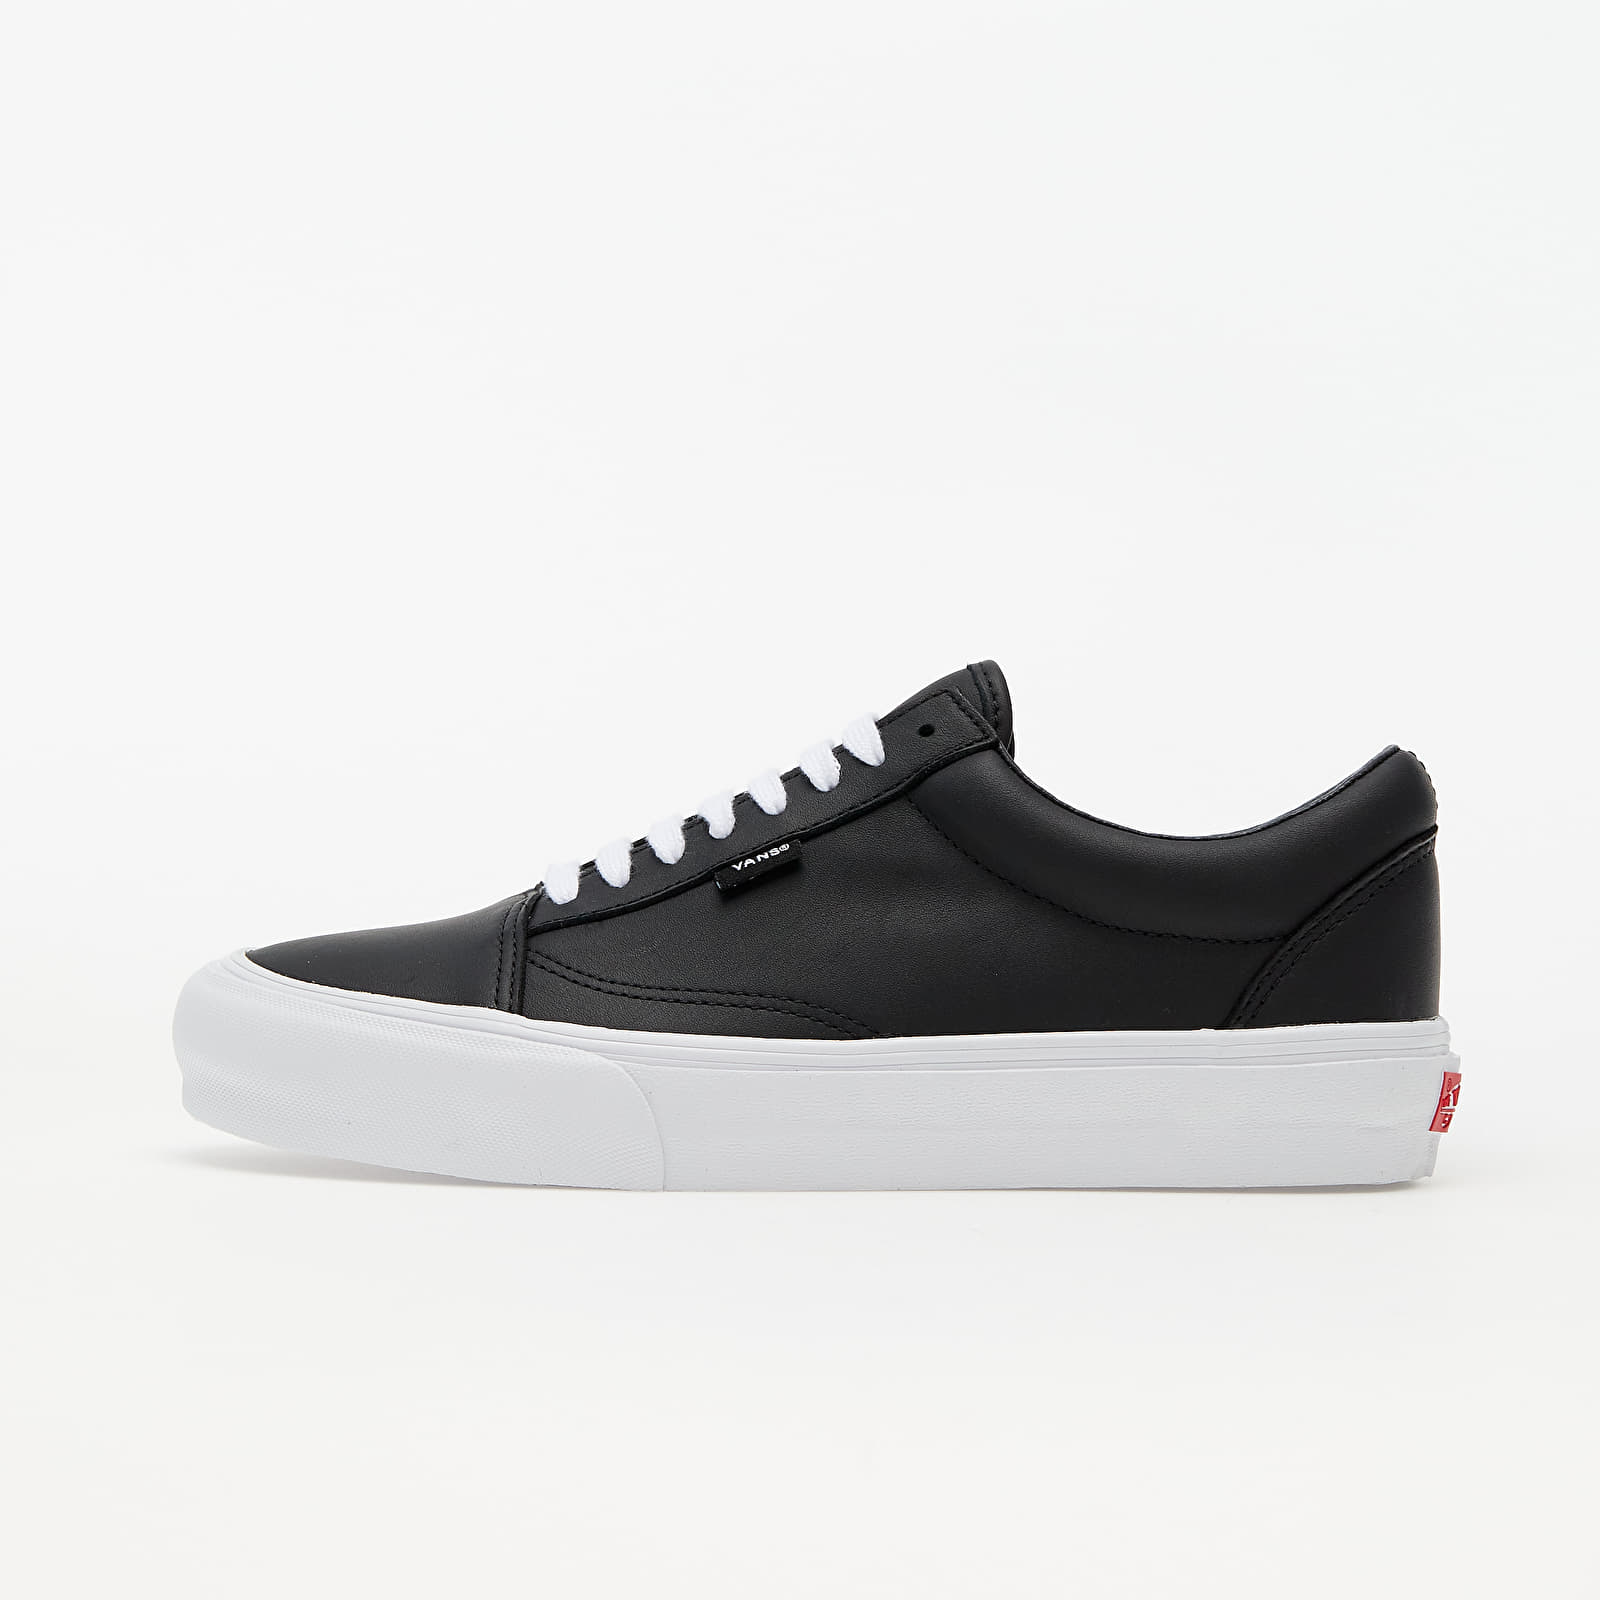 Vans Vault Old Skool NS VLT LX (Leather) Black EUR 38